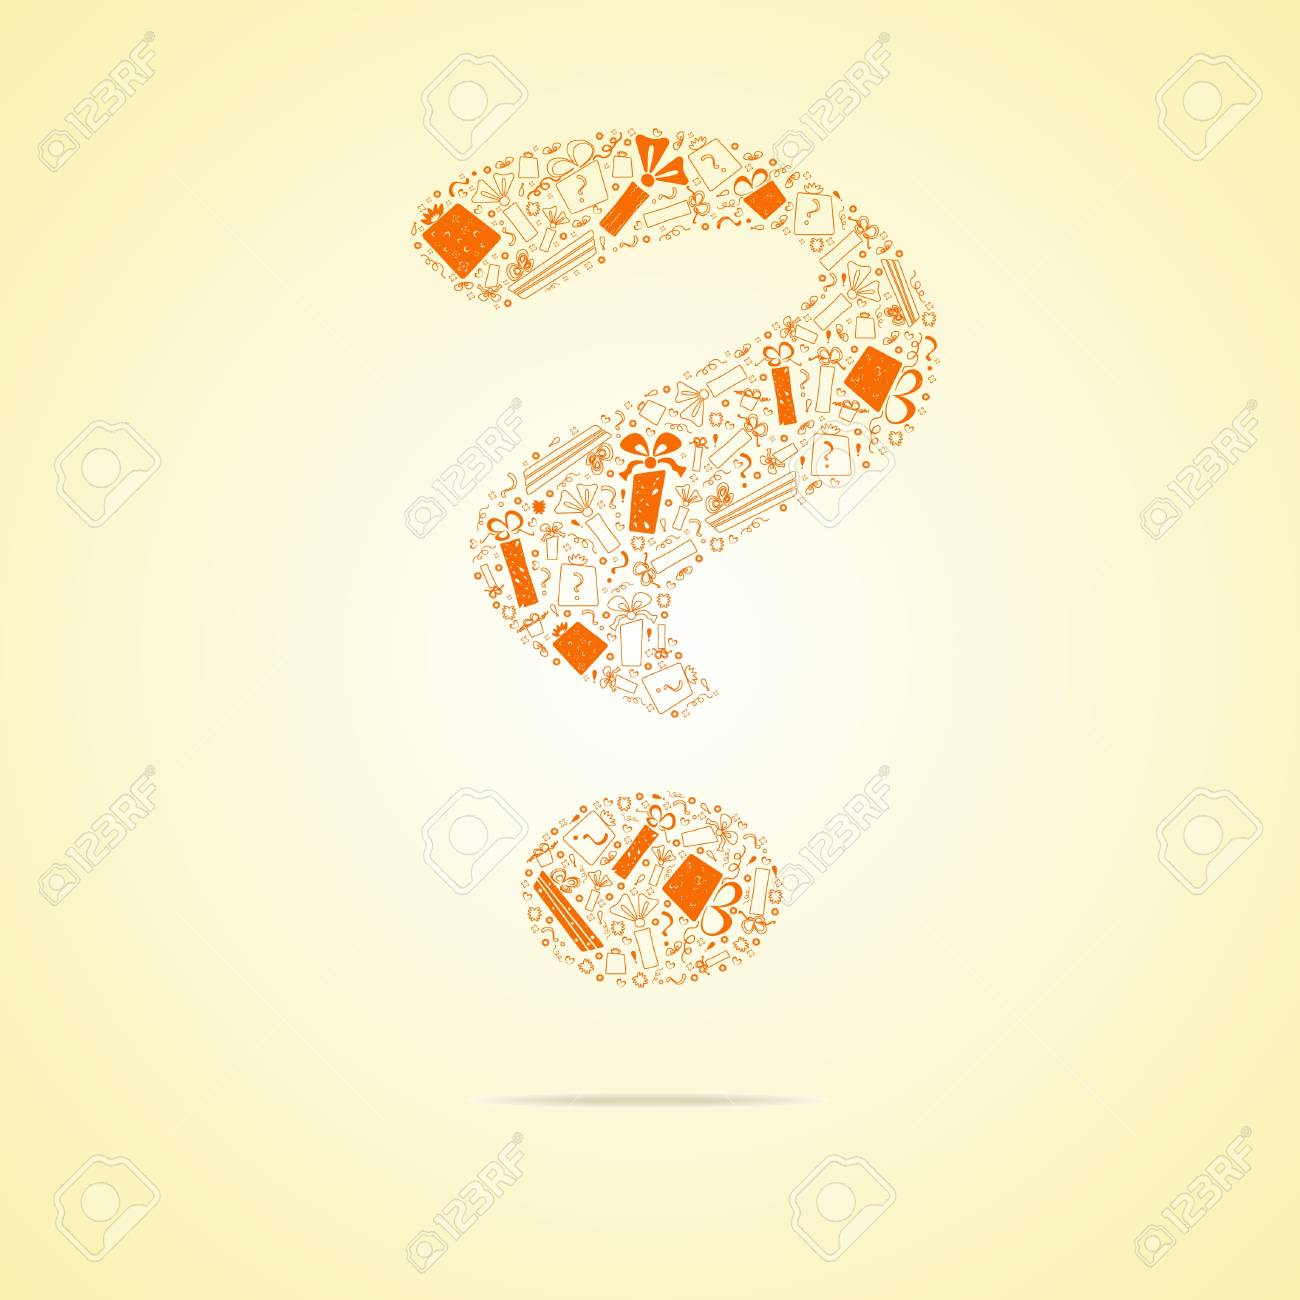 Orange question from gifts. Stock Vector - 10535868